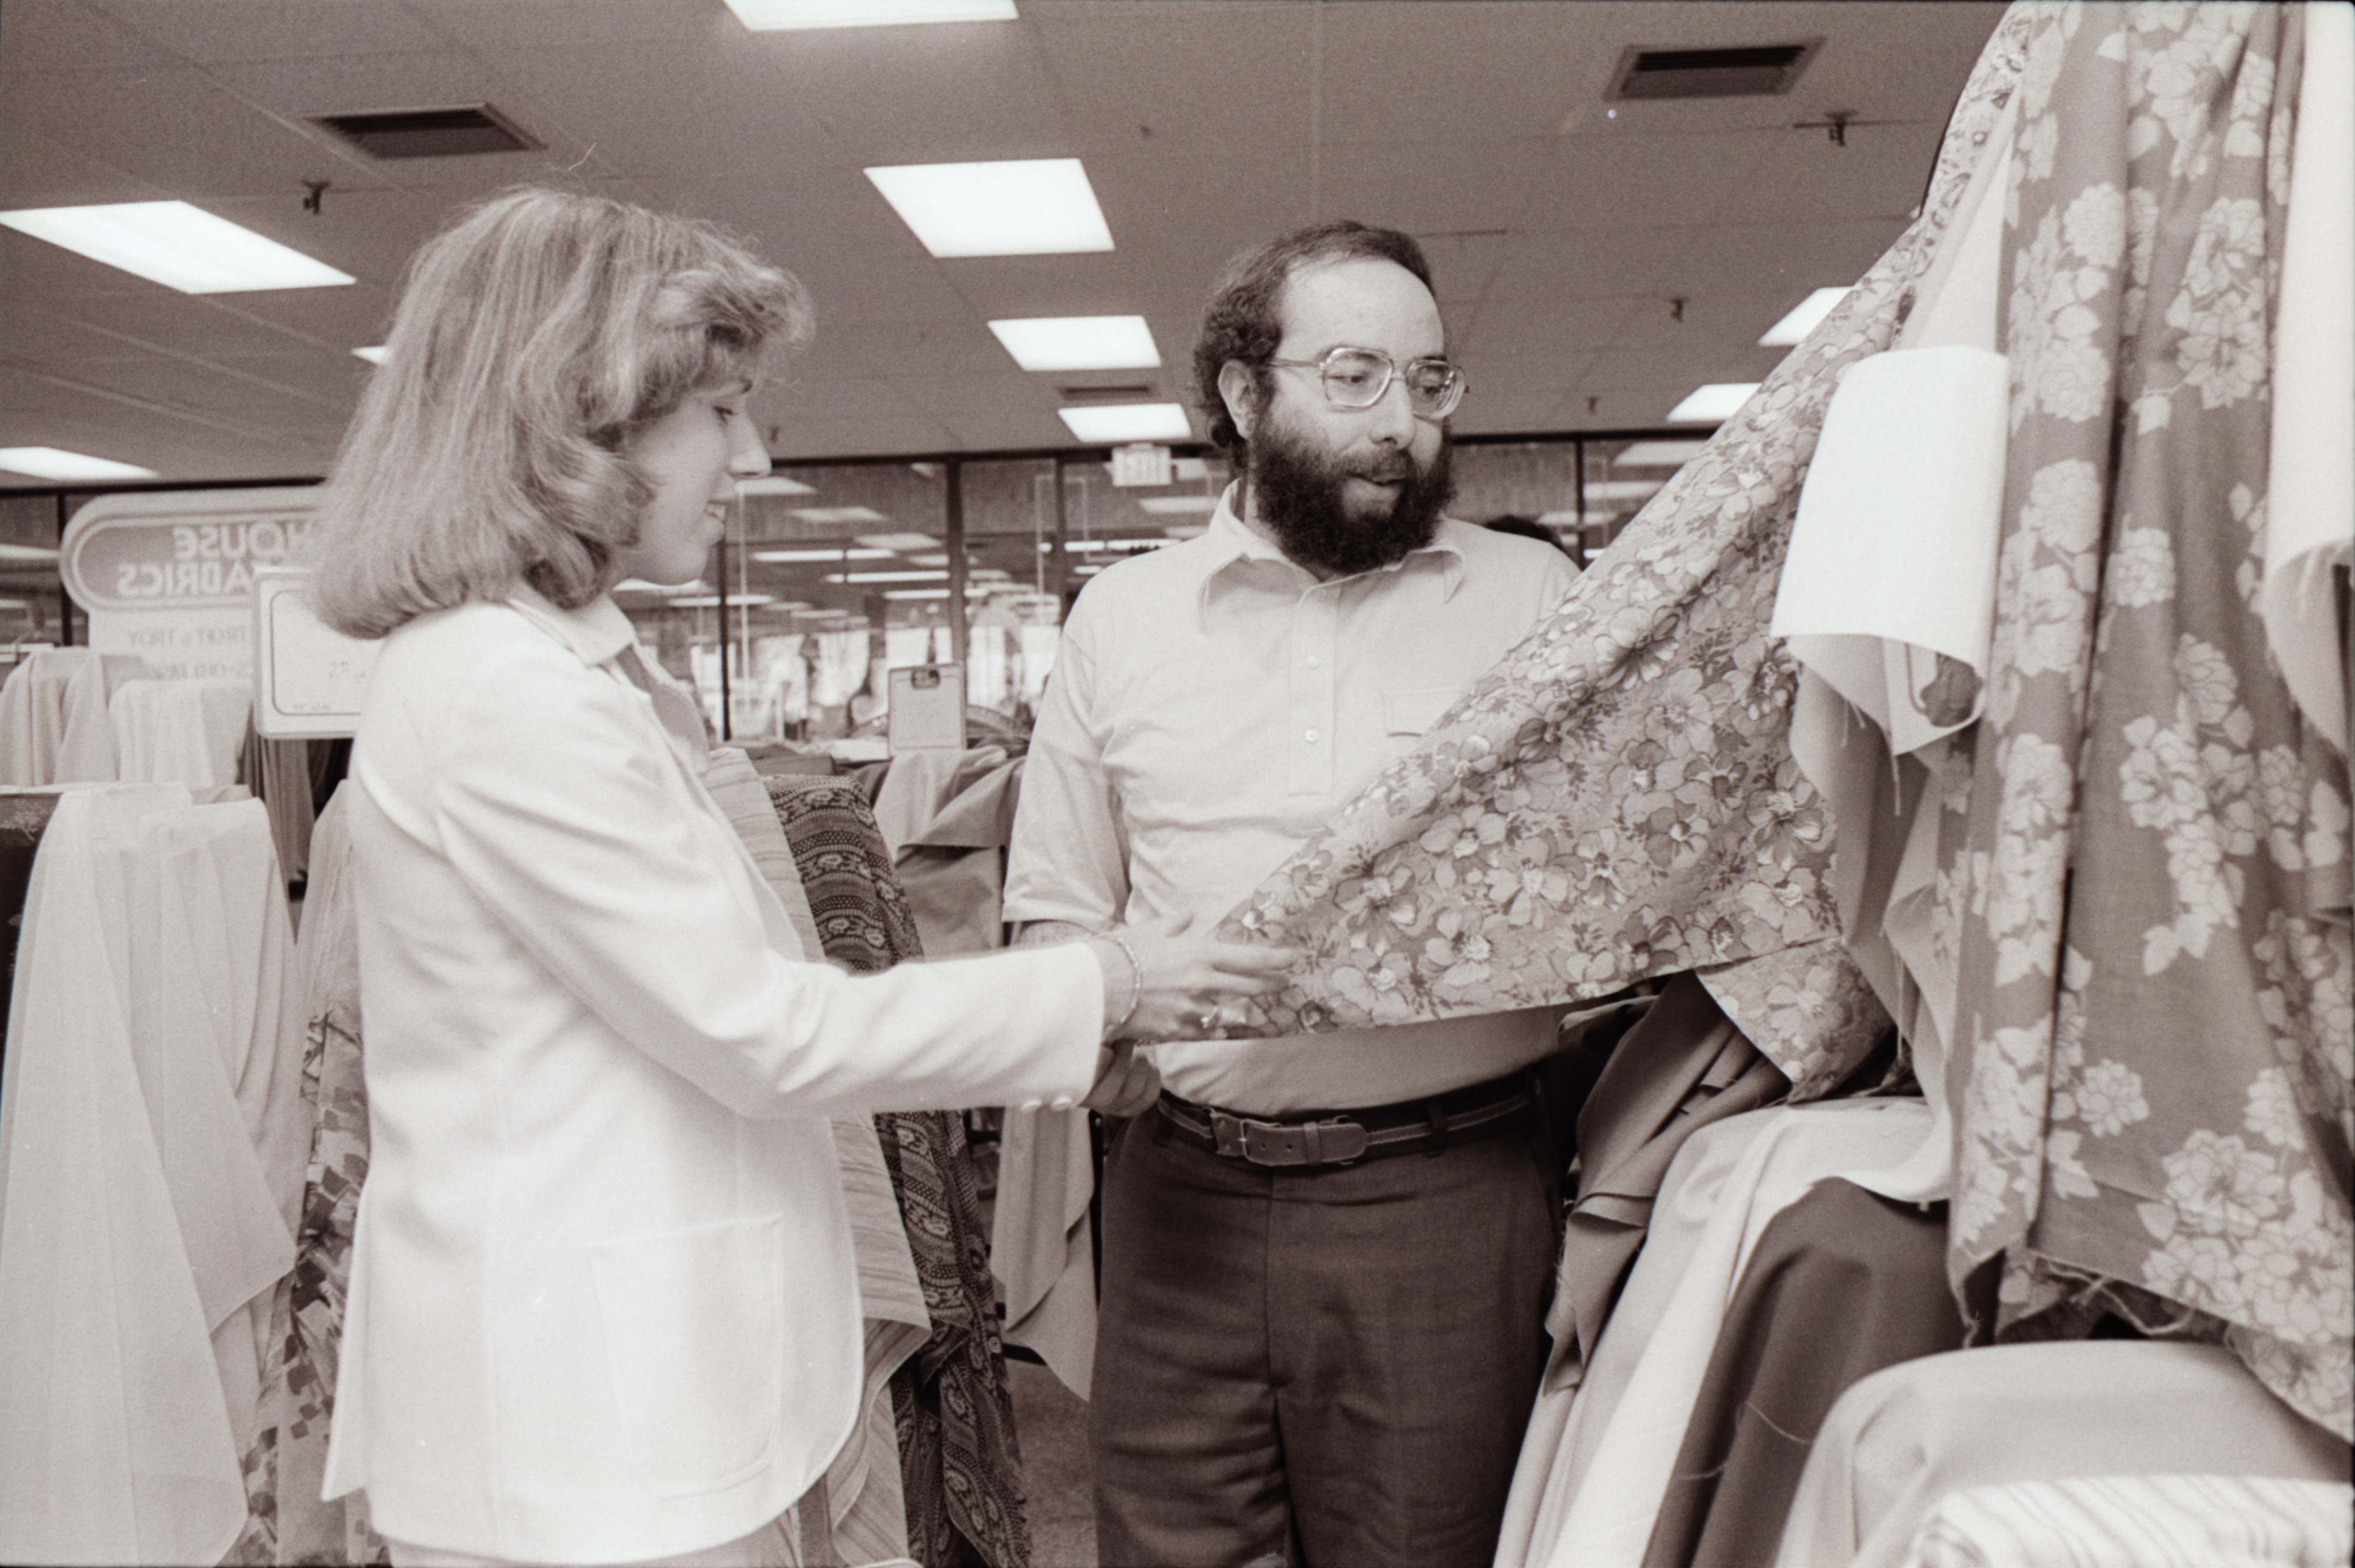 House of Fabrics at Plymouth Mall, May 1978 image